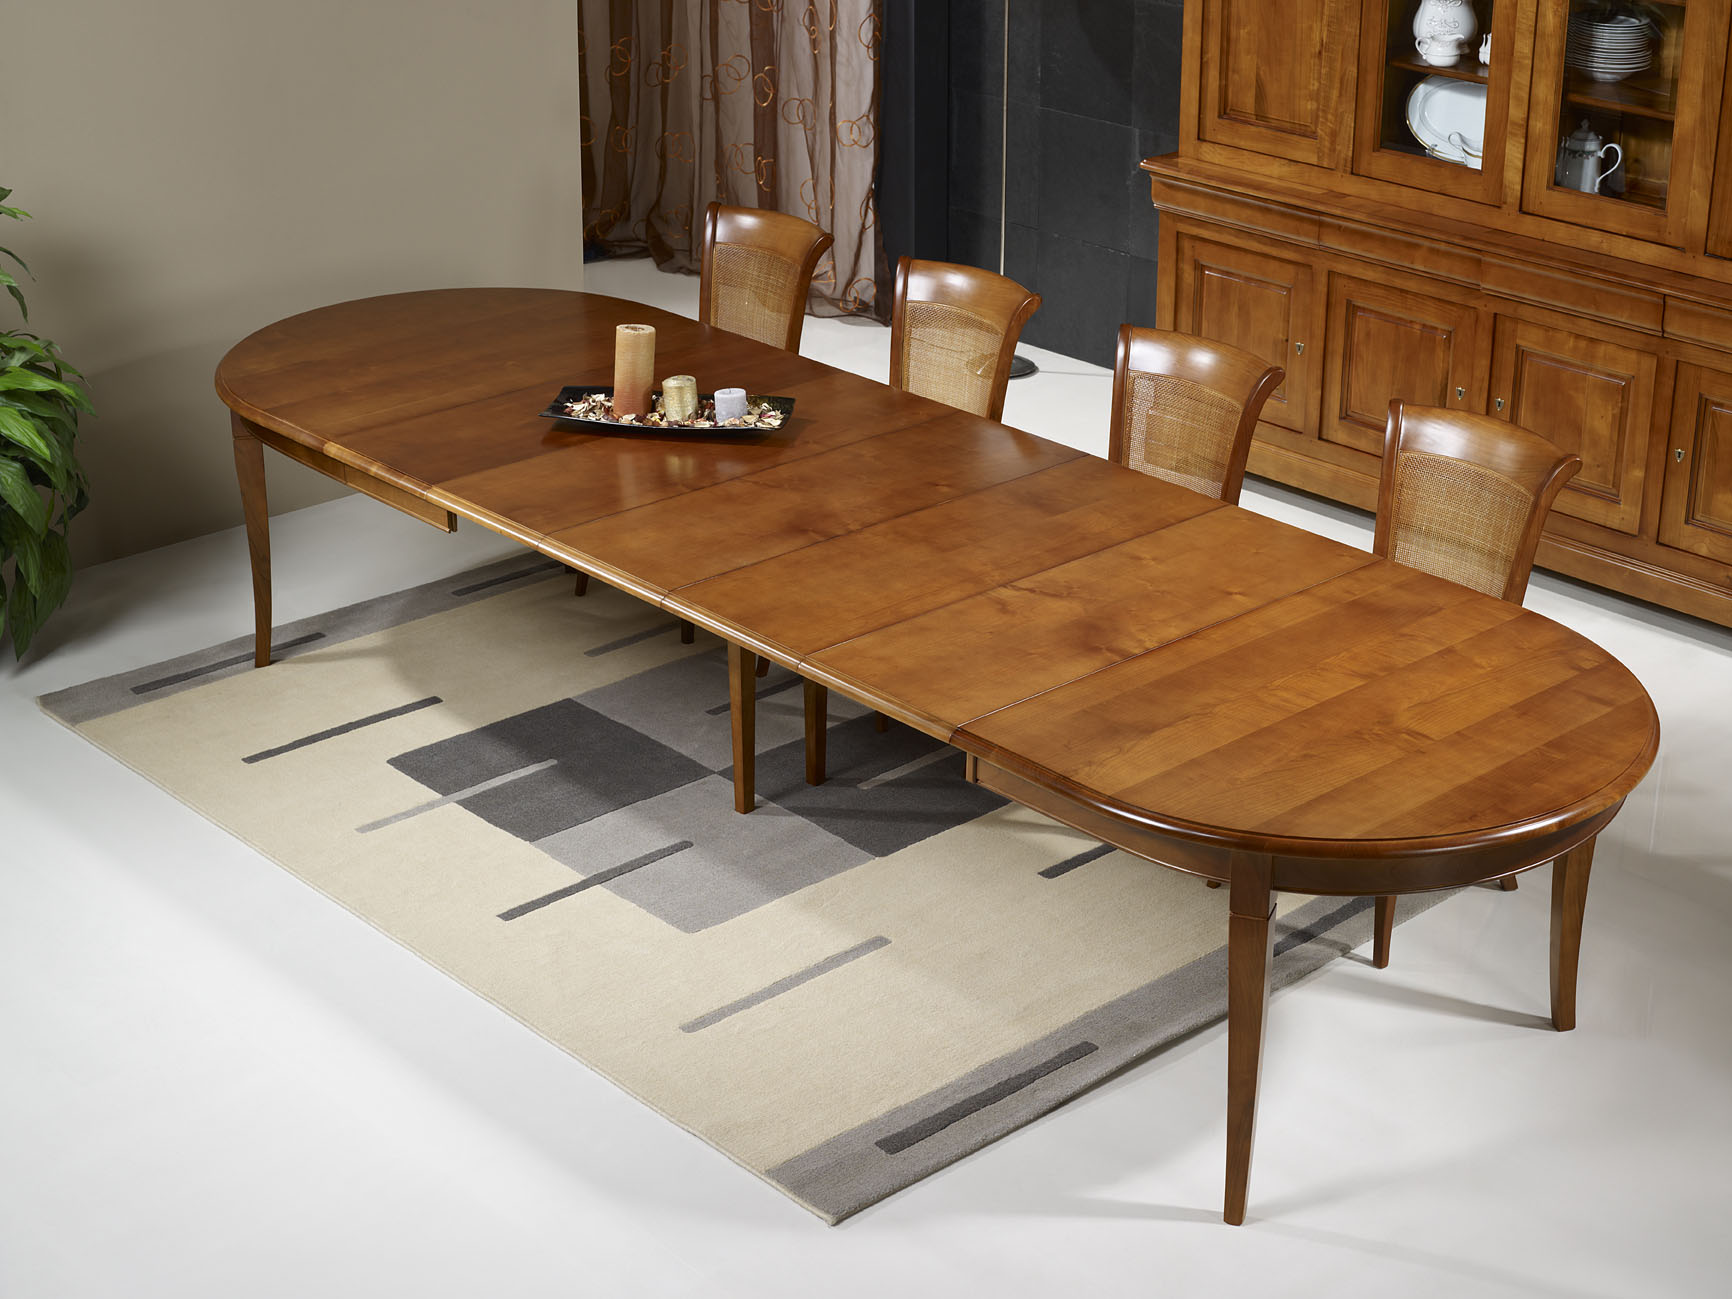 Table ovale 180x120 en merisier massif de style louis - Table ovale avec rallonge ...